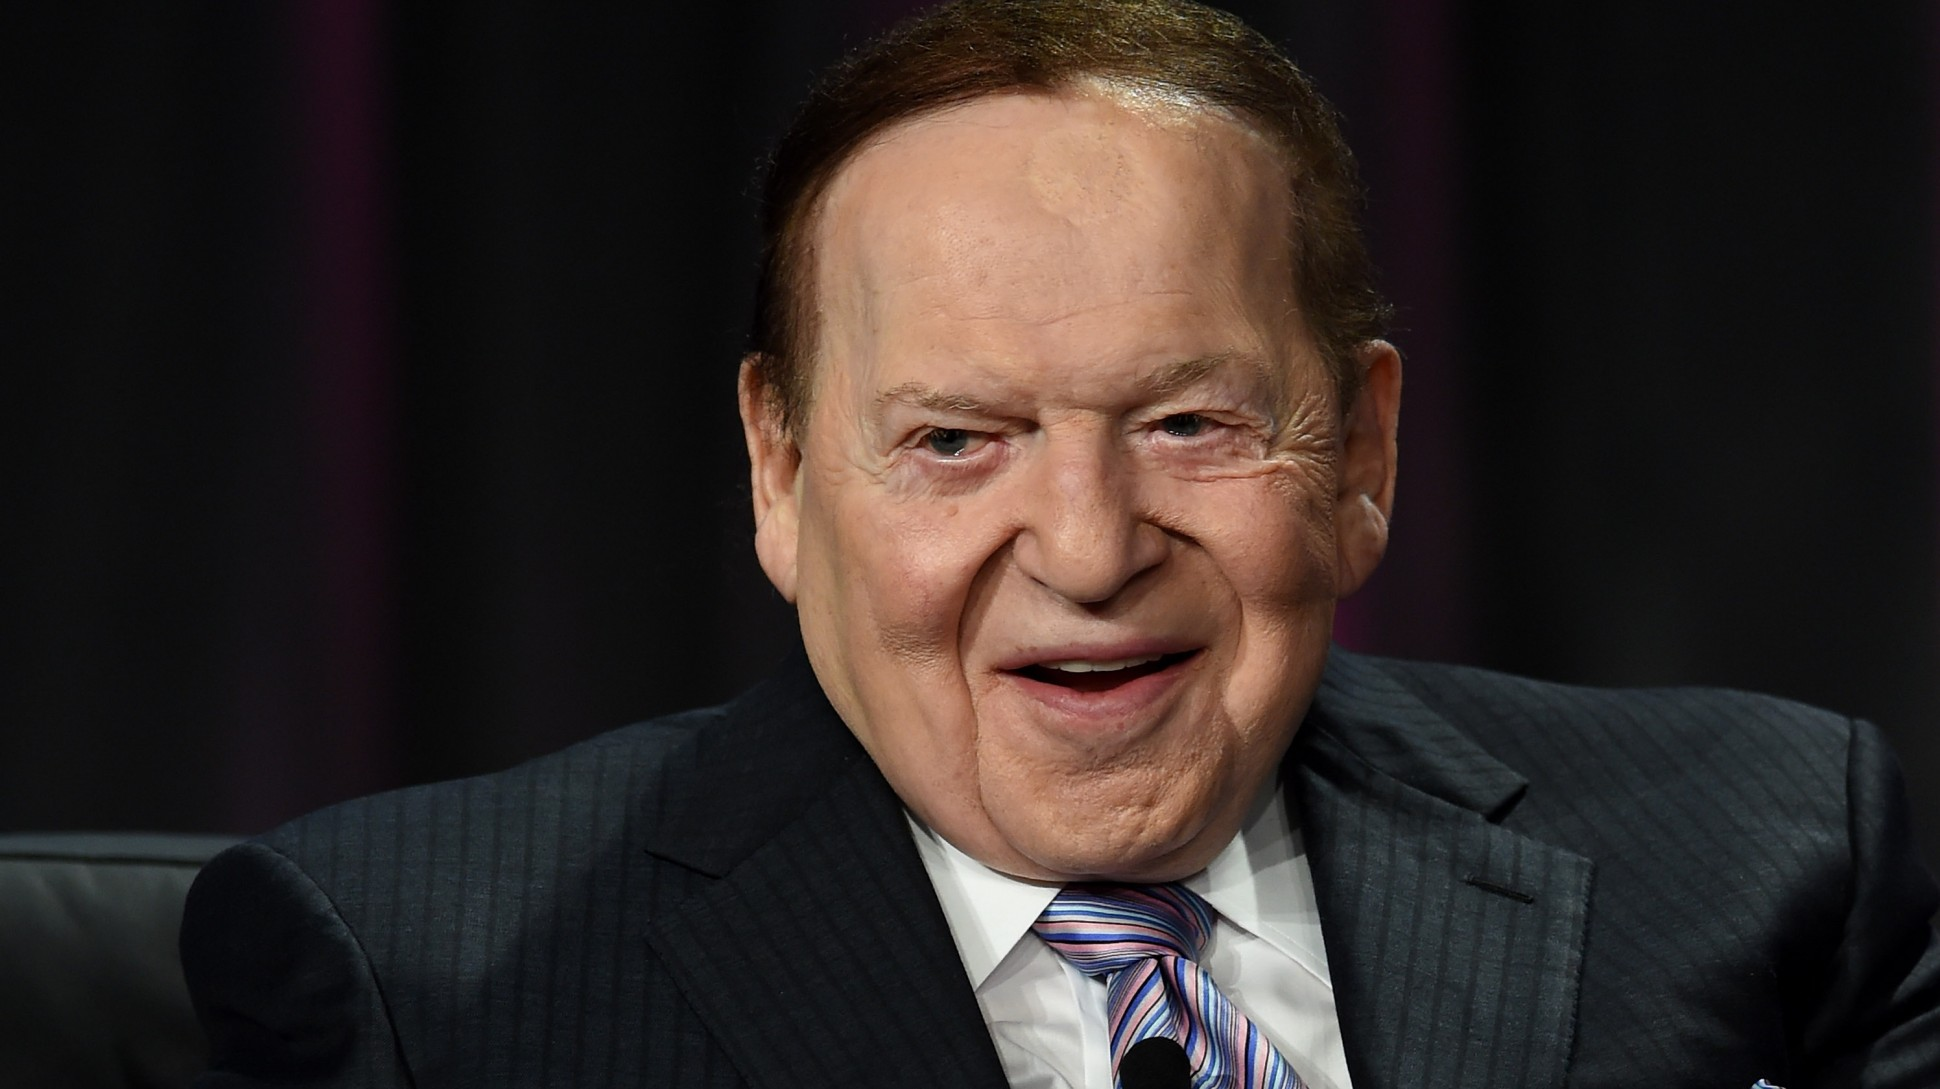 Pittsburgh Steelers Owner Says Oakland Raiders Don't Need Sheldon Adelson's Help to Move to Las Vegas